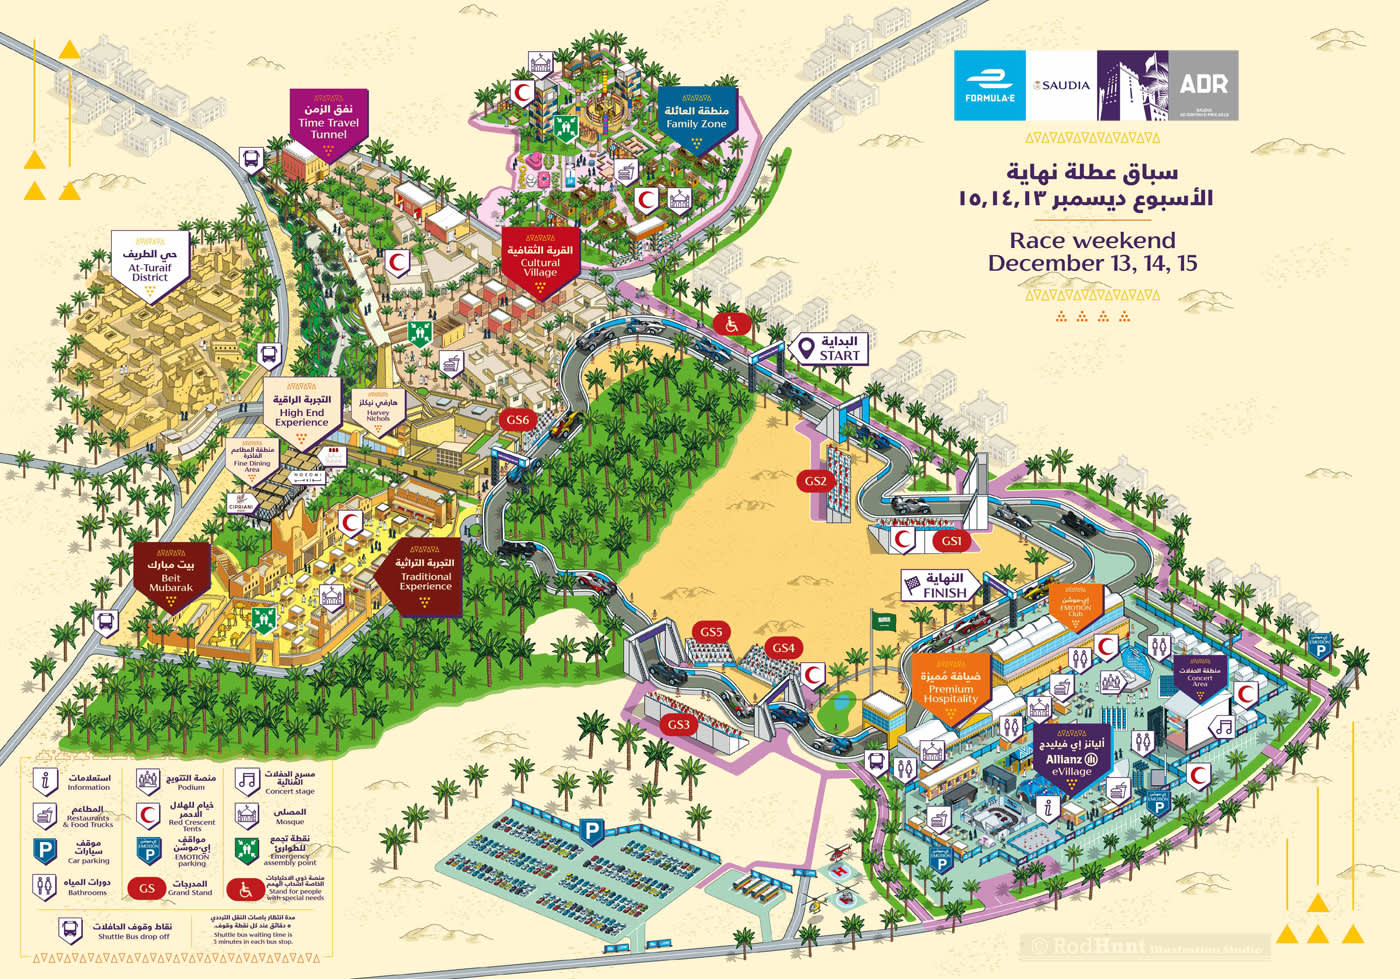 Formula E 2018 Ad Diriyah E-Prix Event Map Illustration